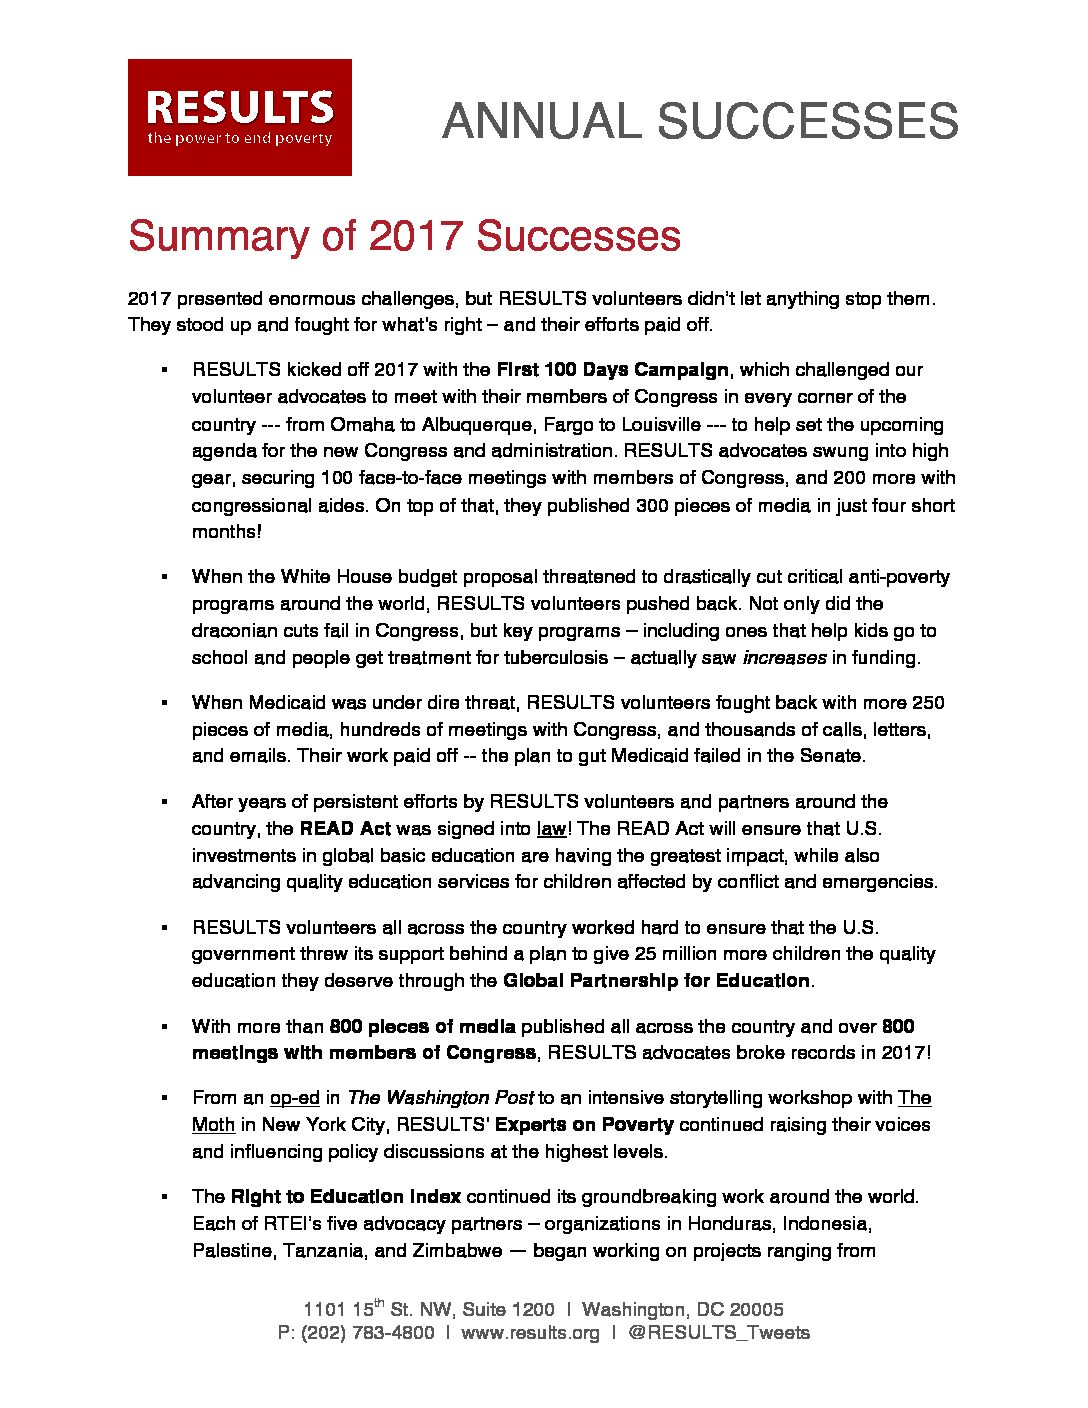 Annual Successes 2017